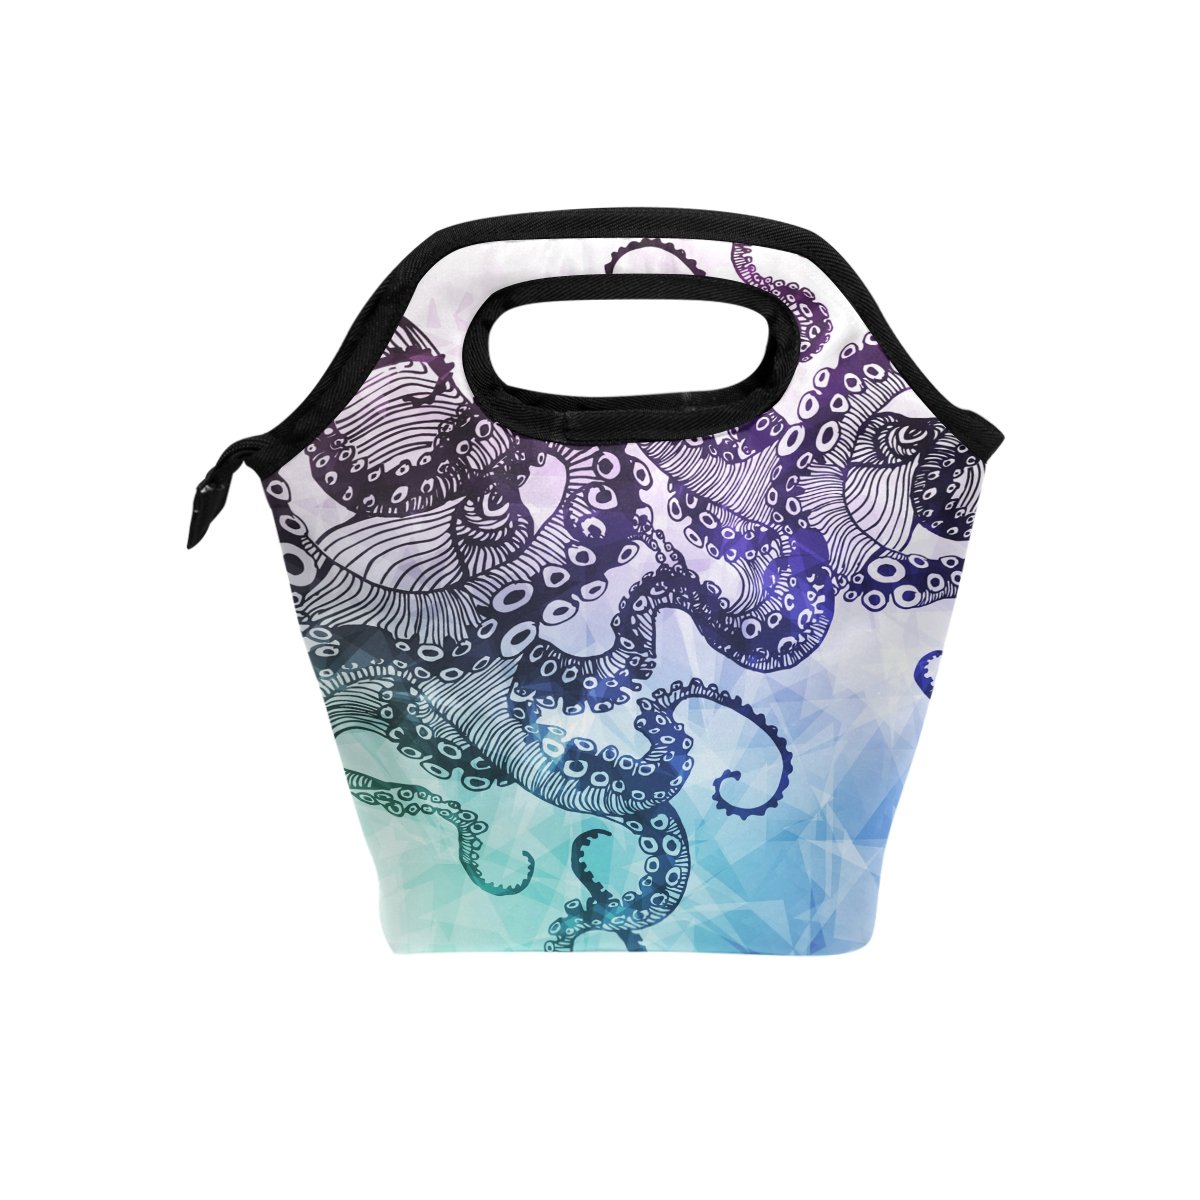 ALAZA Sea Monster Animal Insulated Lunch Tote Bag, Watercolor Octopus Hipster Reusable Waterproof School Picnic Lunchbox Container Organizer For Women Men Kids Boys Girls